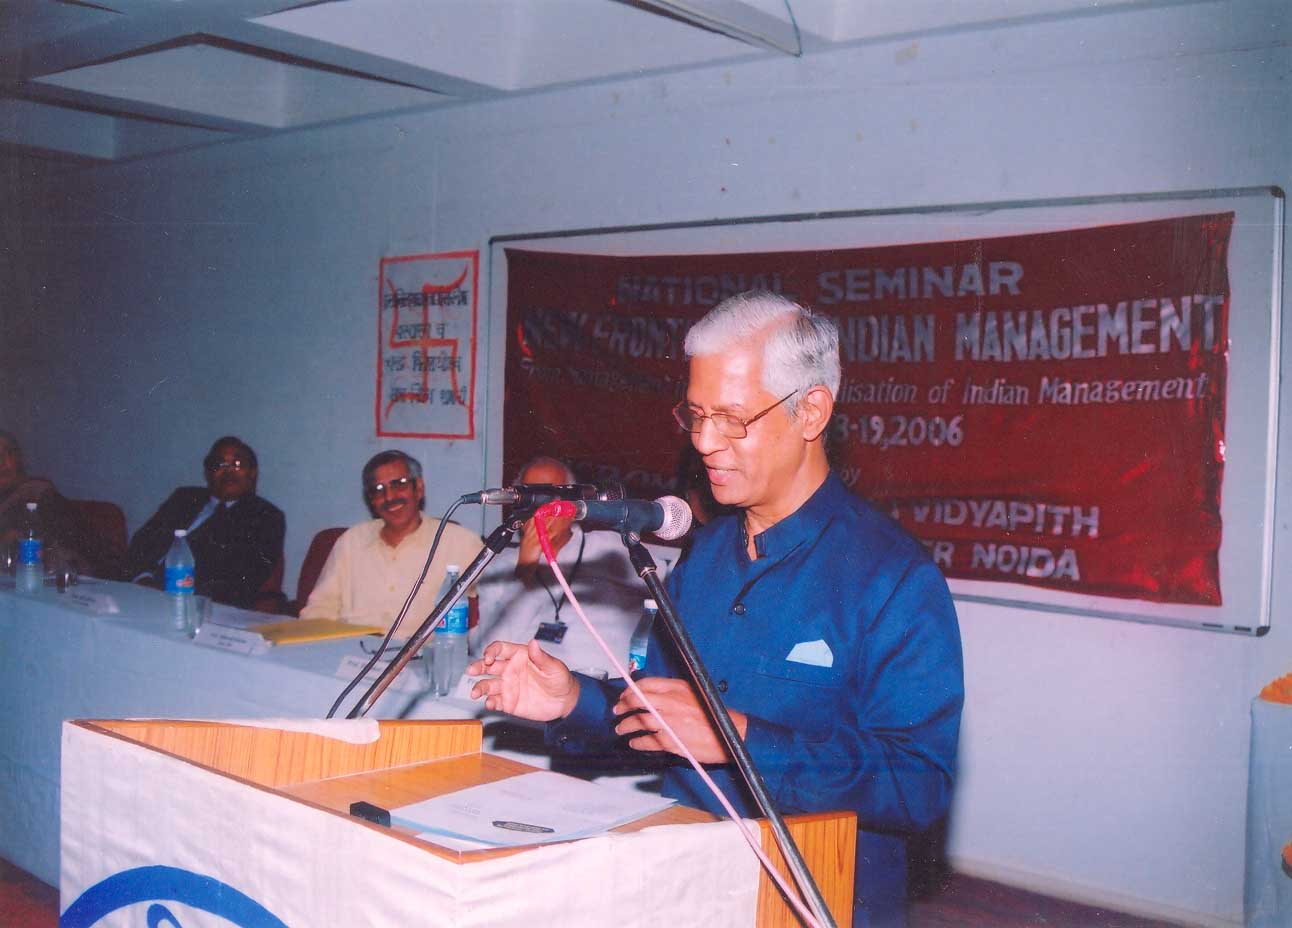 M.B. Attrey  in the  National Seminar on 'New Frontiers in Indian Management' (2006)